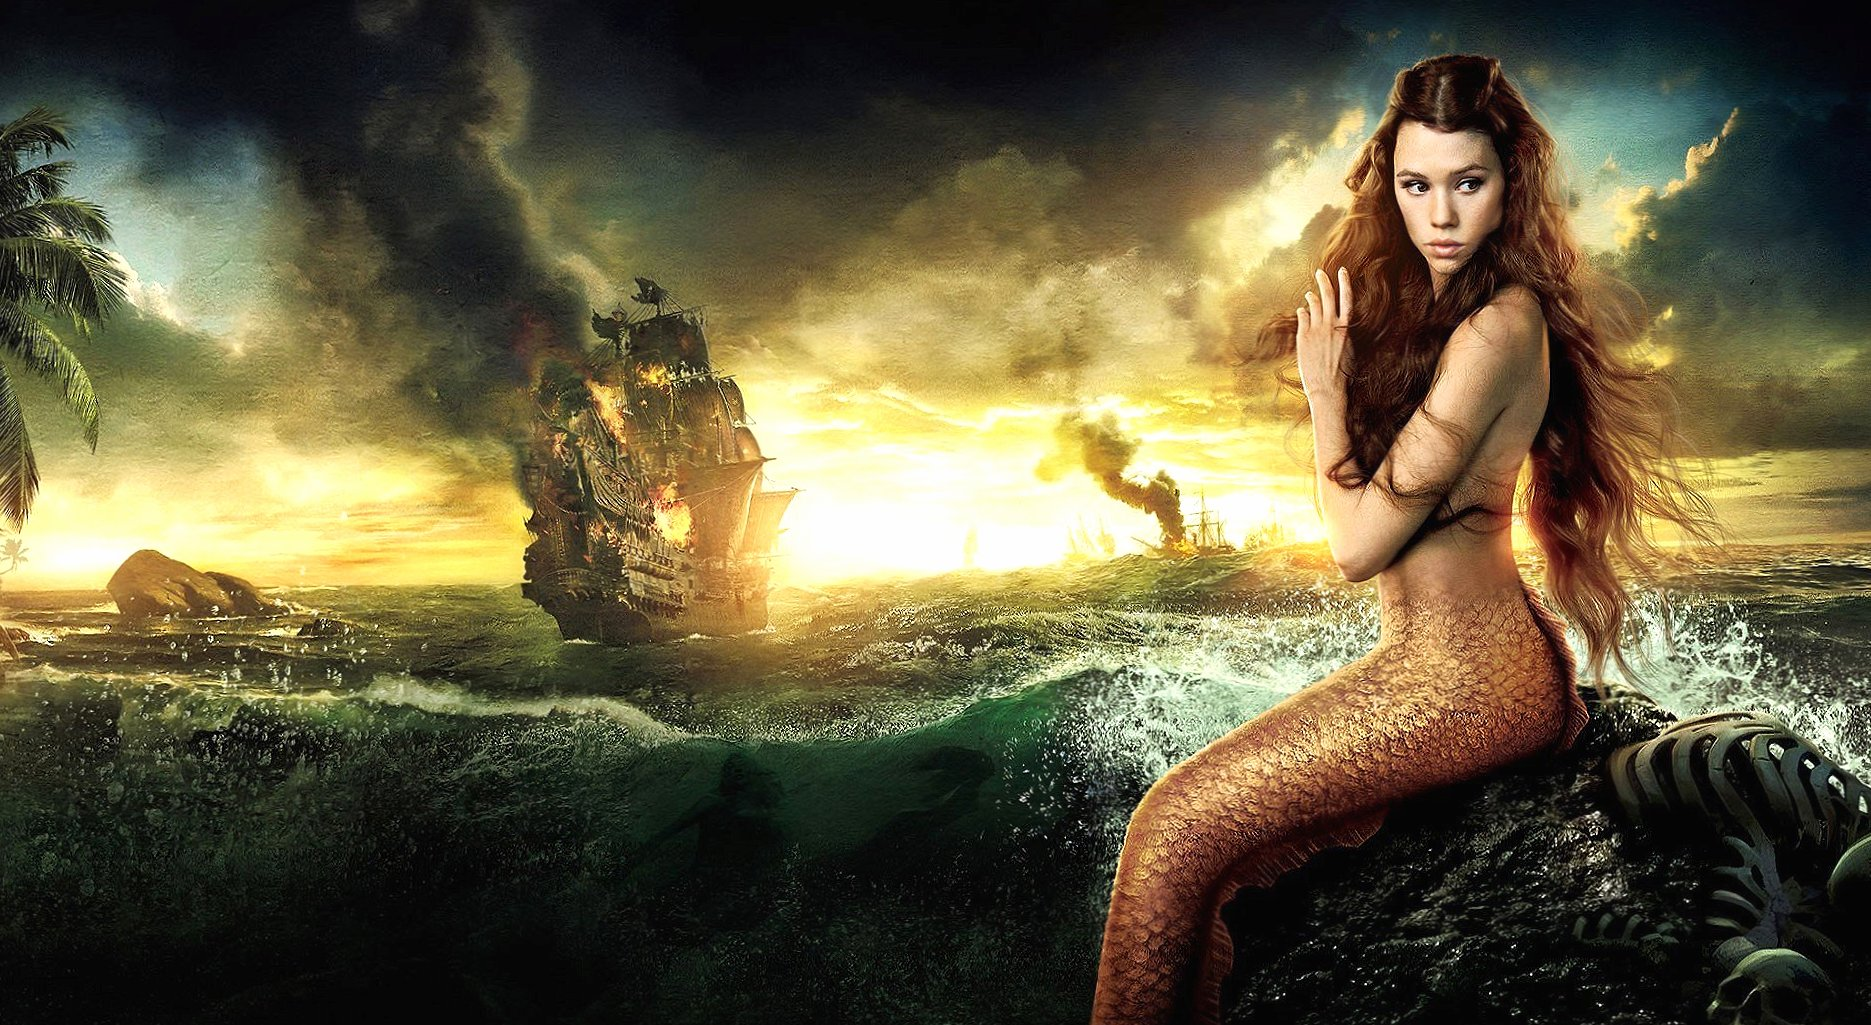 Mermaid fantasy wallpapers HD quality